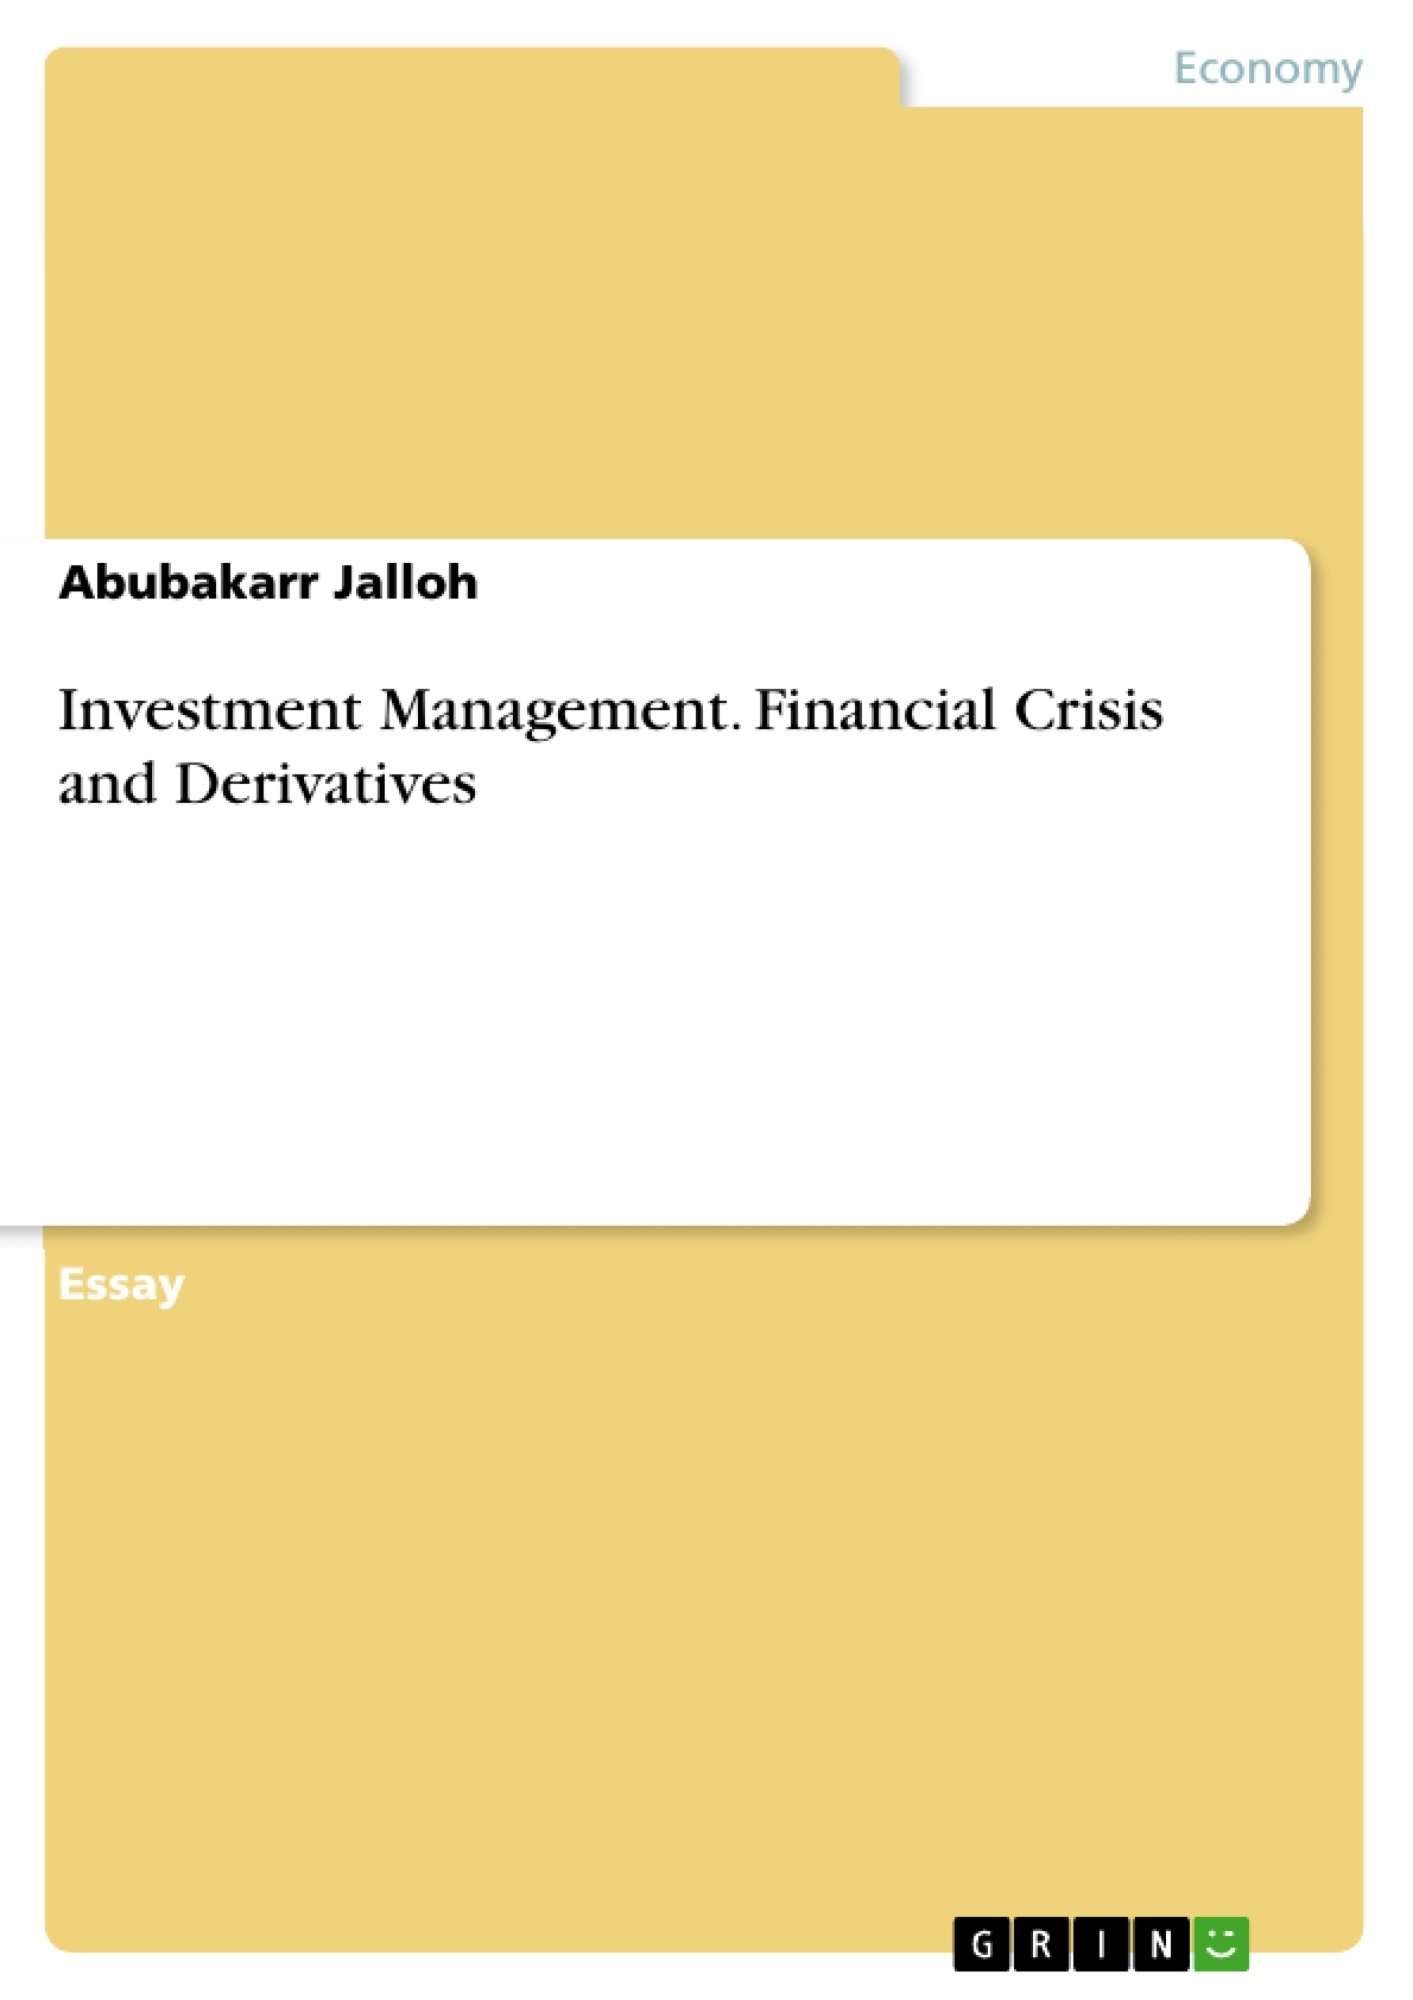 Title: Investment Management. Financial Crisis and Derivatives